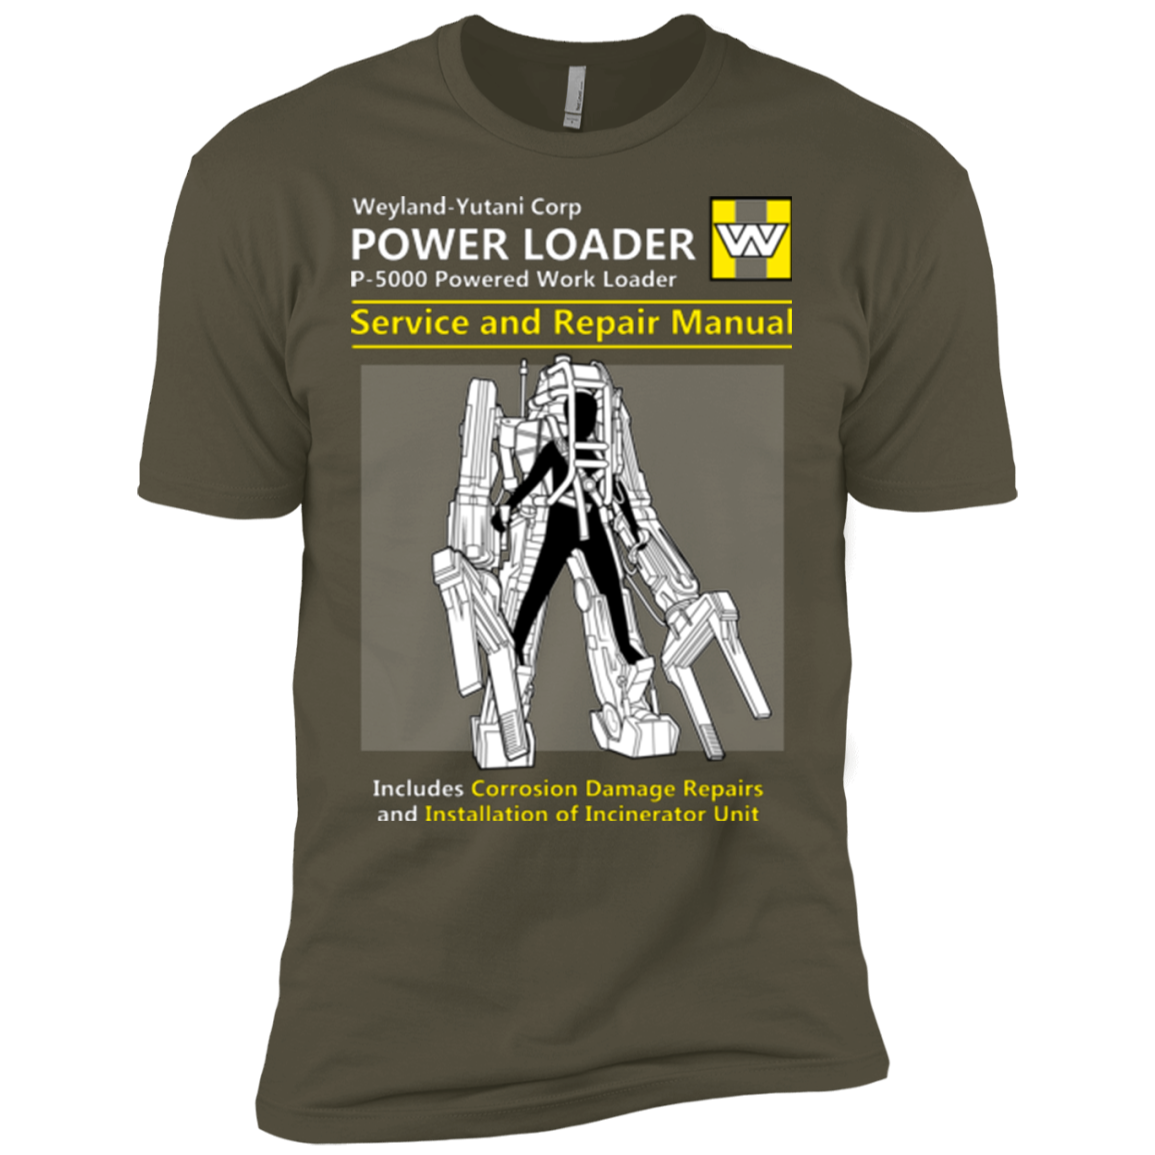 POWERLOADER SERVICE AND REPAIR MANUAL Men's Premium T-Shirt